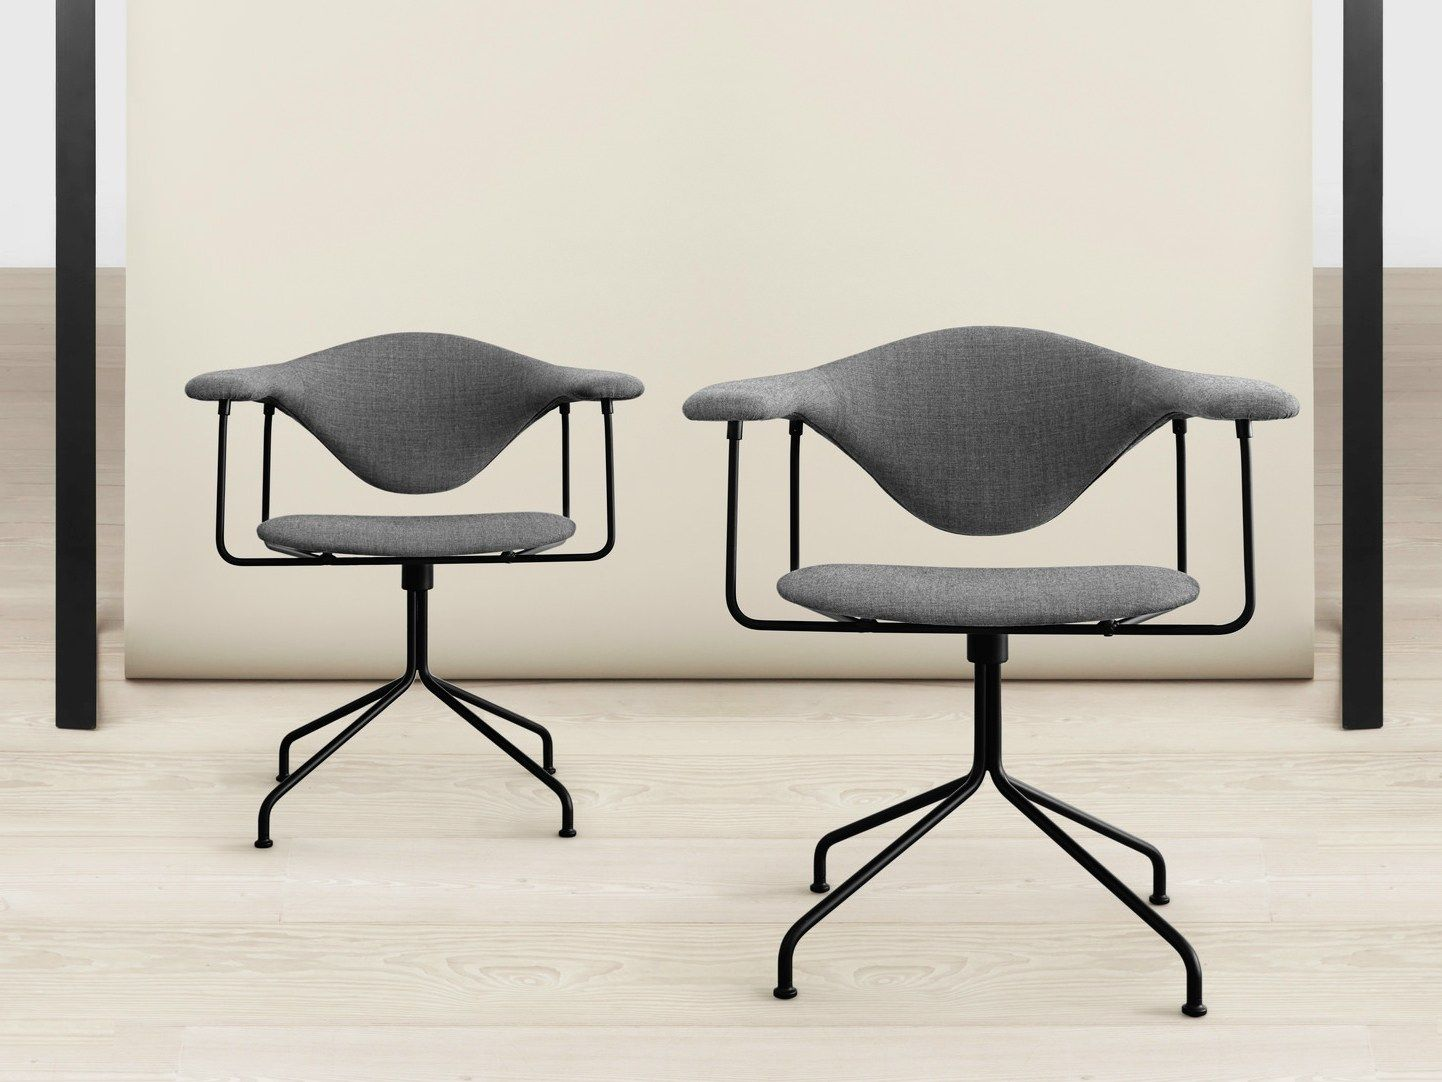 Masculo office chair, Gubi Chair, Dining table chairs